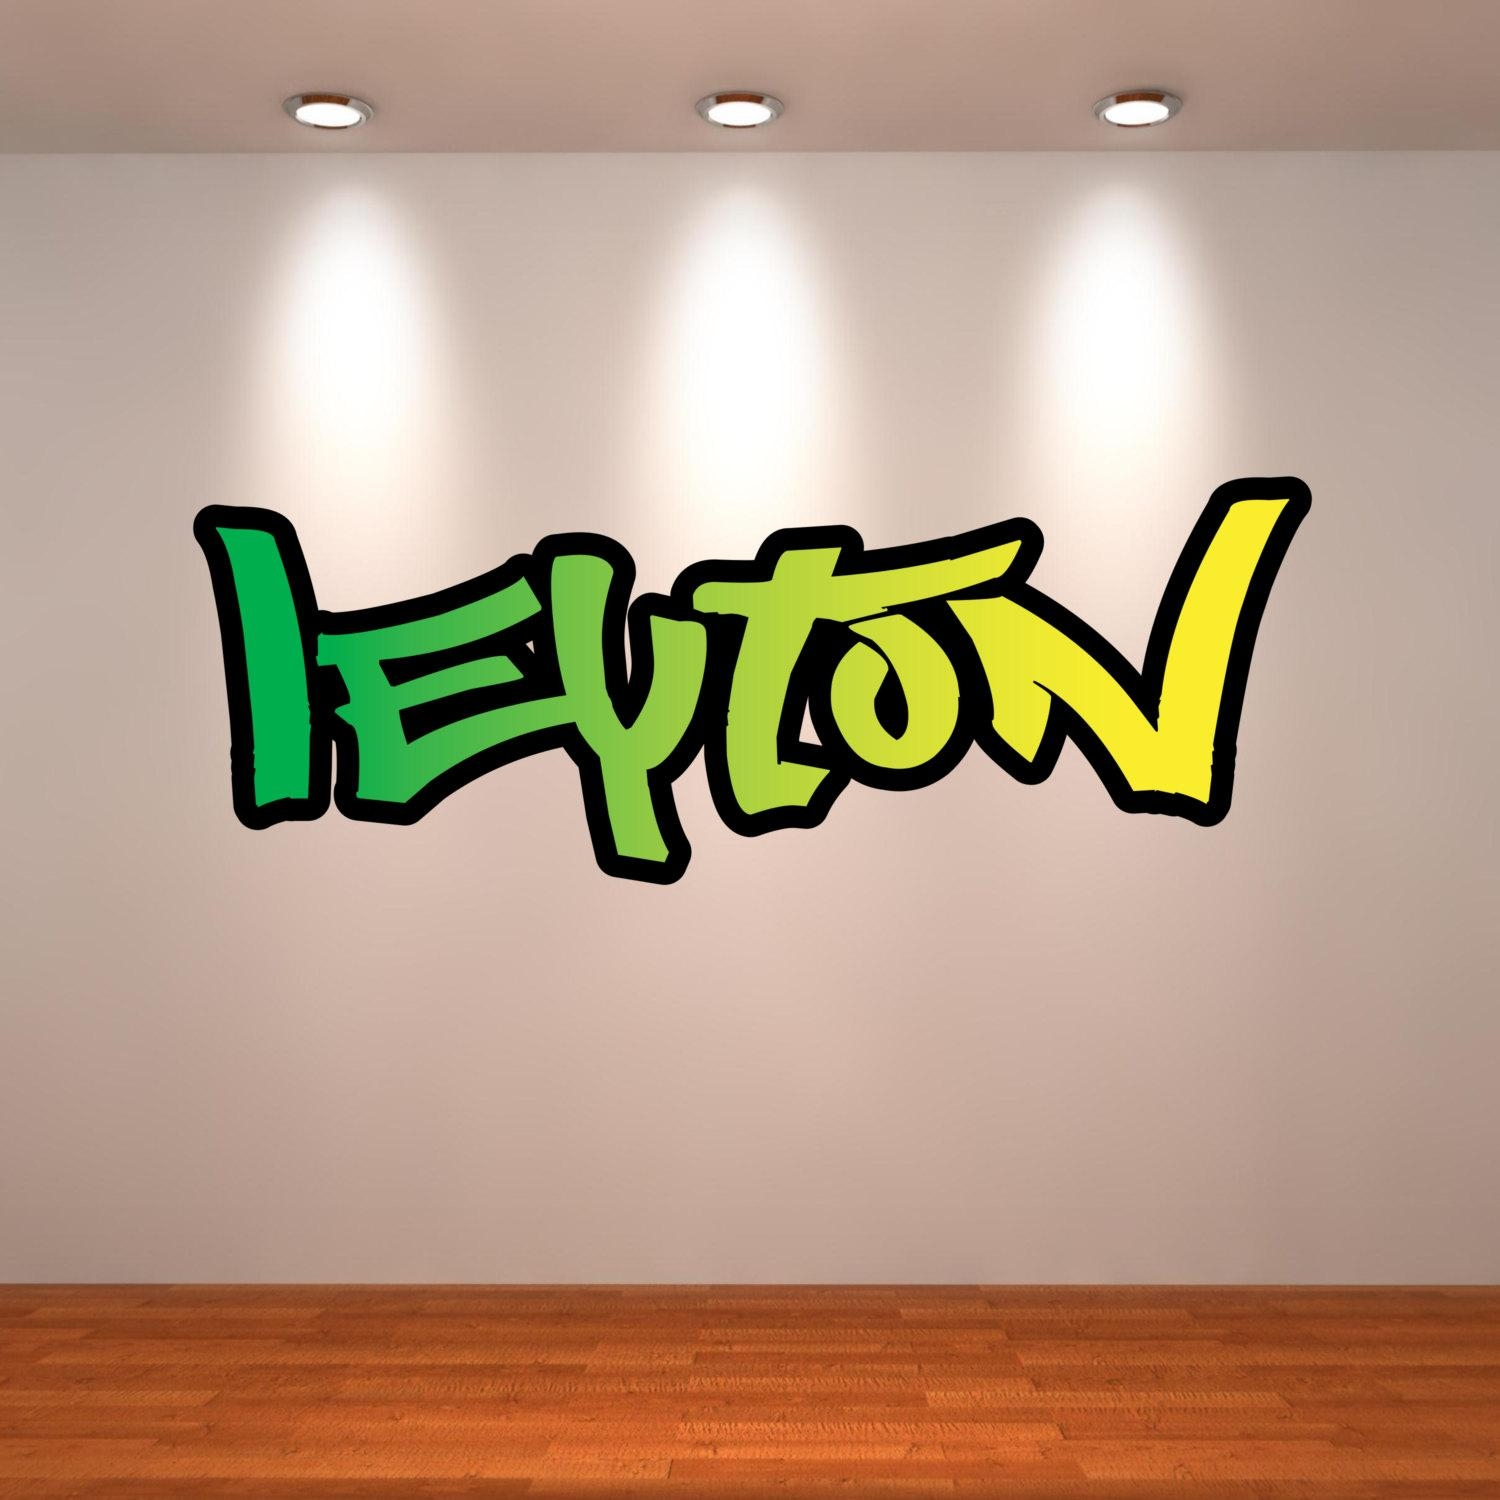 Personalised Wall Decal Graffiti Name Wall Art Sticker Pertaining To Graffiti Wall Art Stickers (Image 14 of 20)